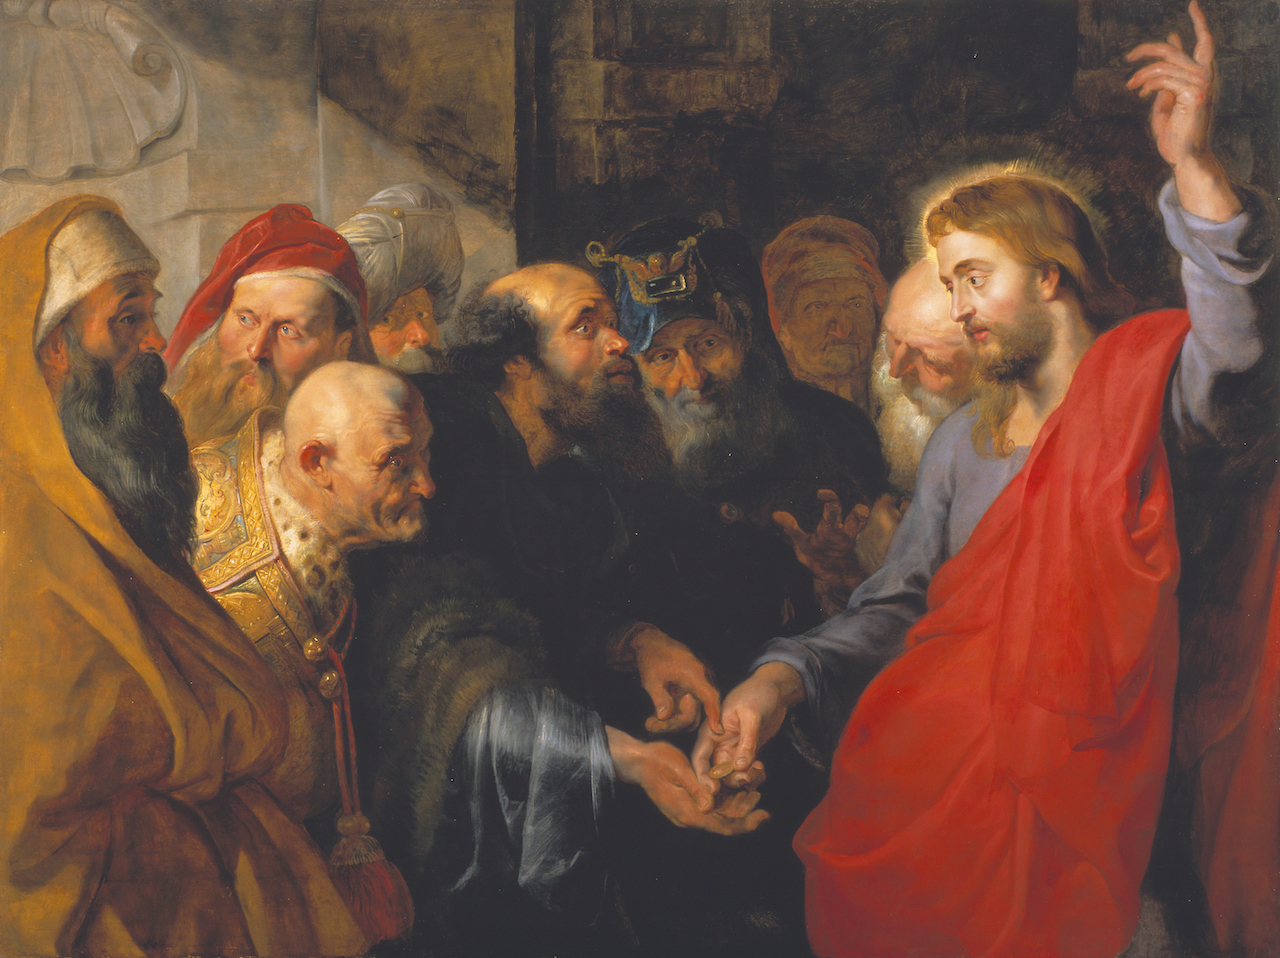 Peter Paul Rubens, The Tribute Money of 1612. (Image courtesy of the Fine Arts Museums of San Francisco)